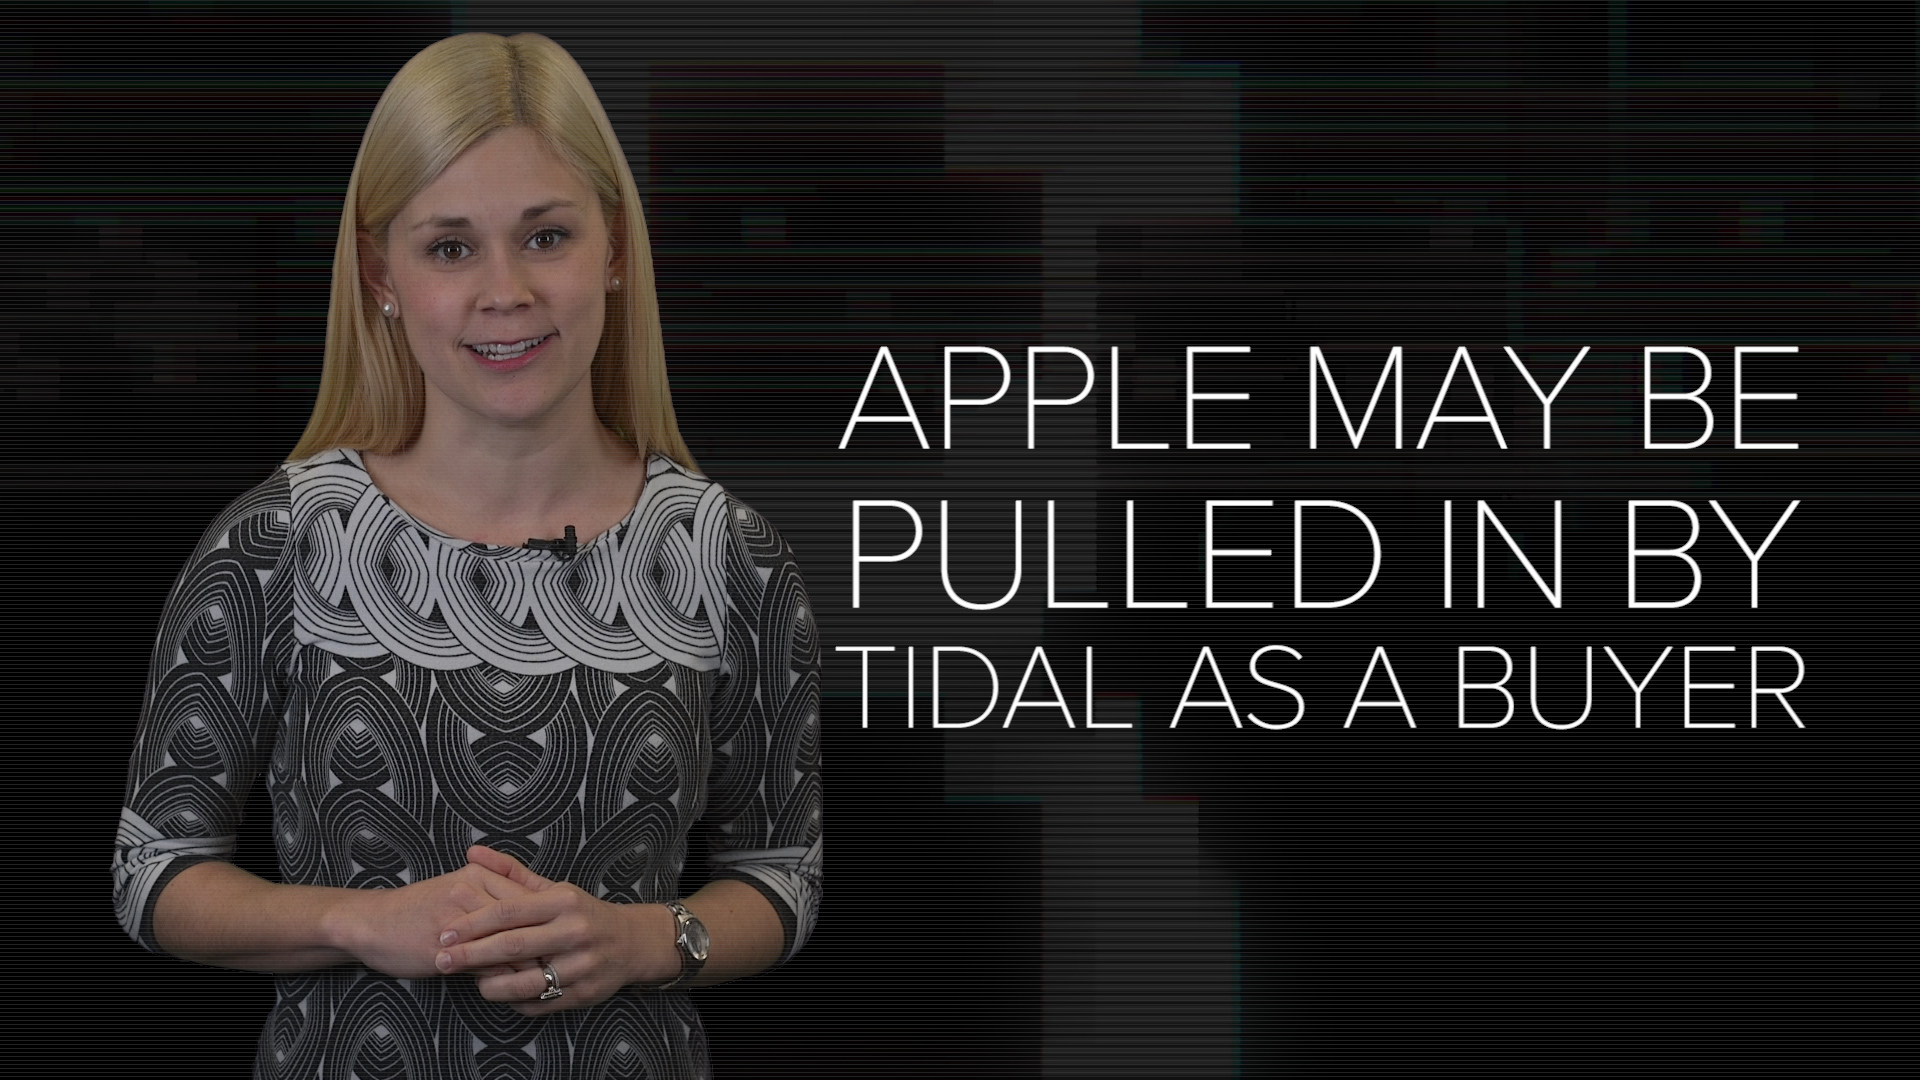 Video: Apple may be pulled in by Tidal as a buyer